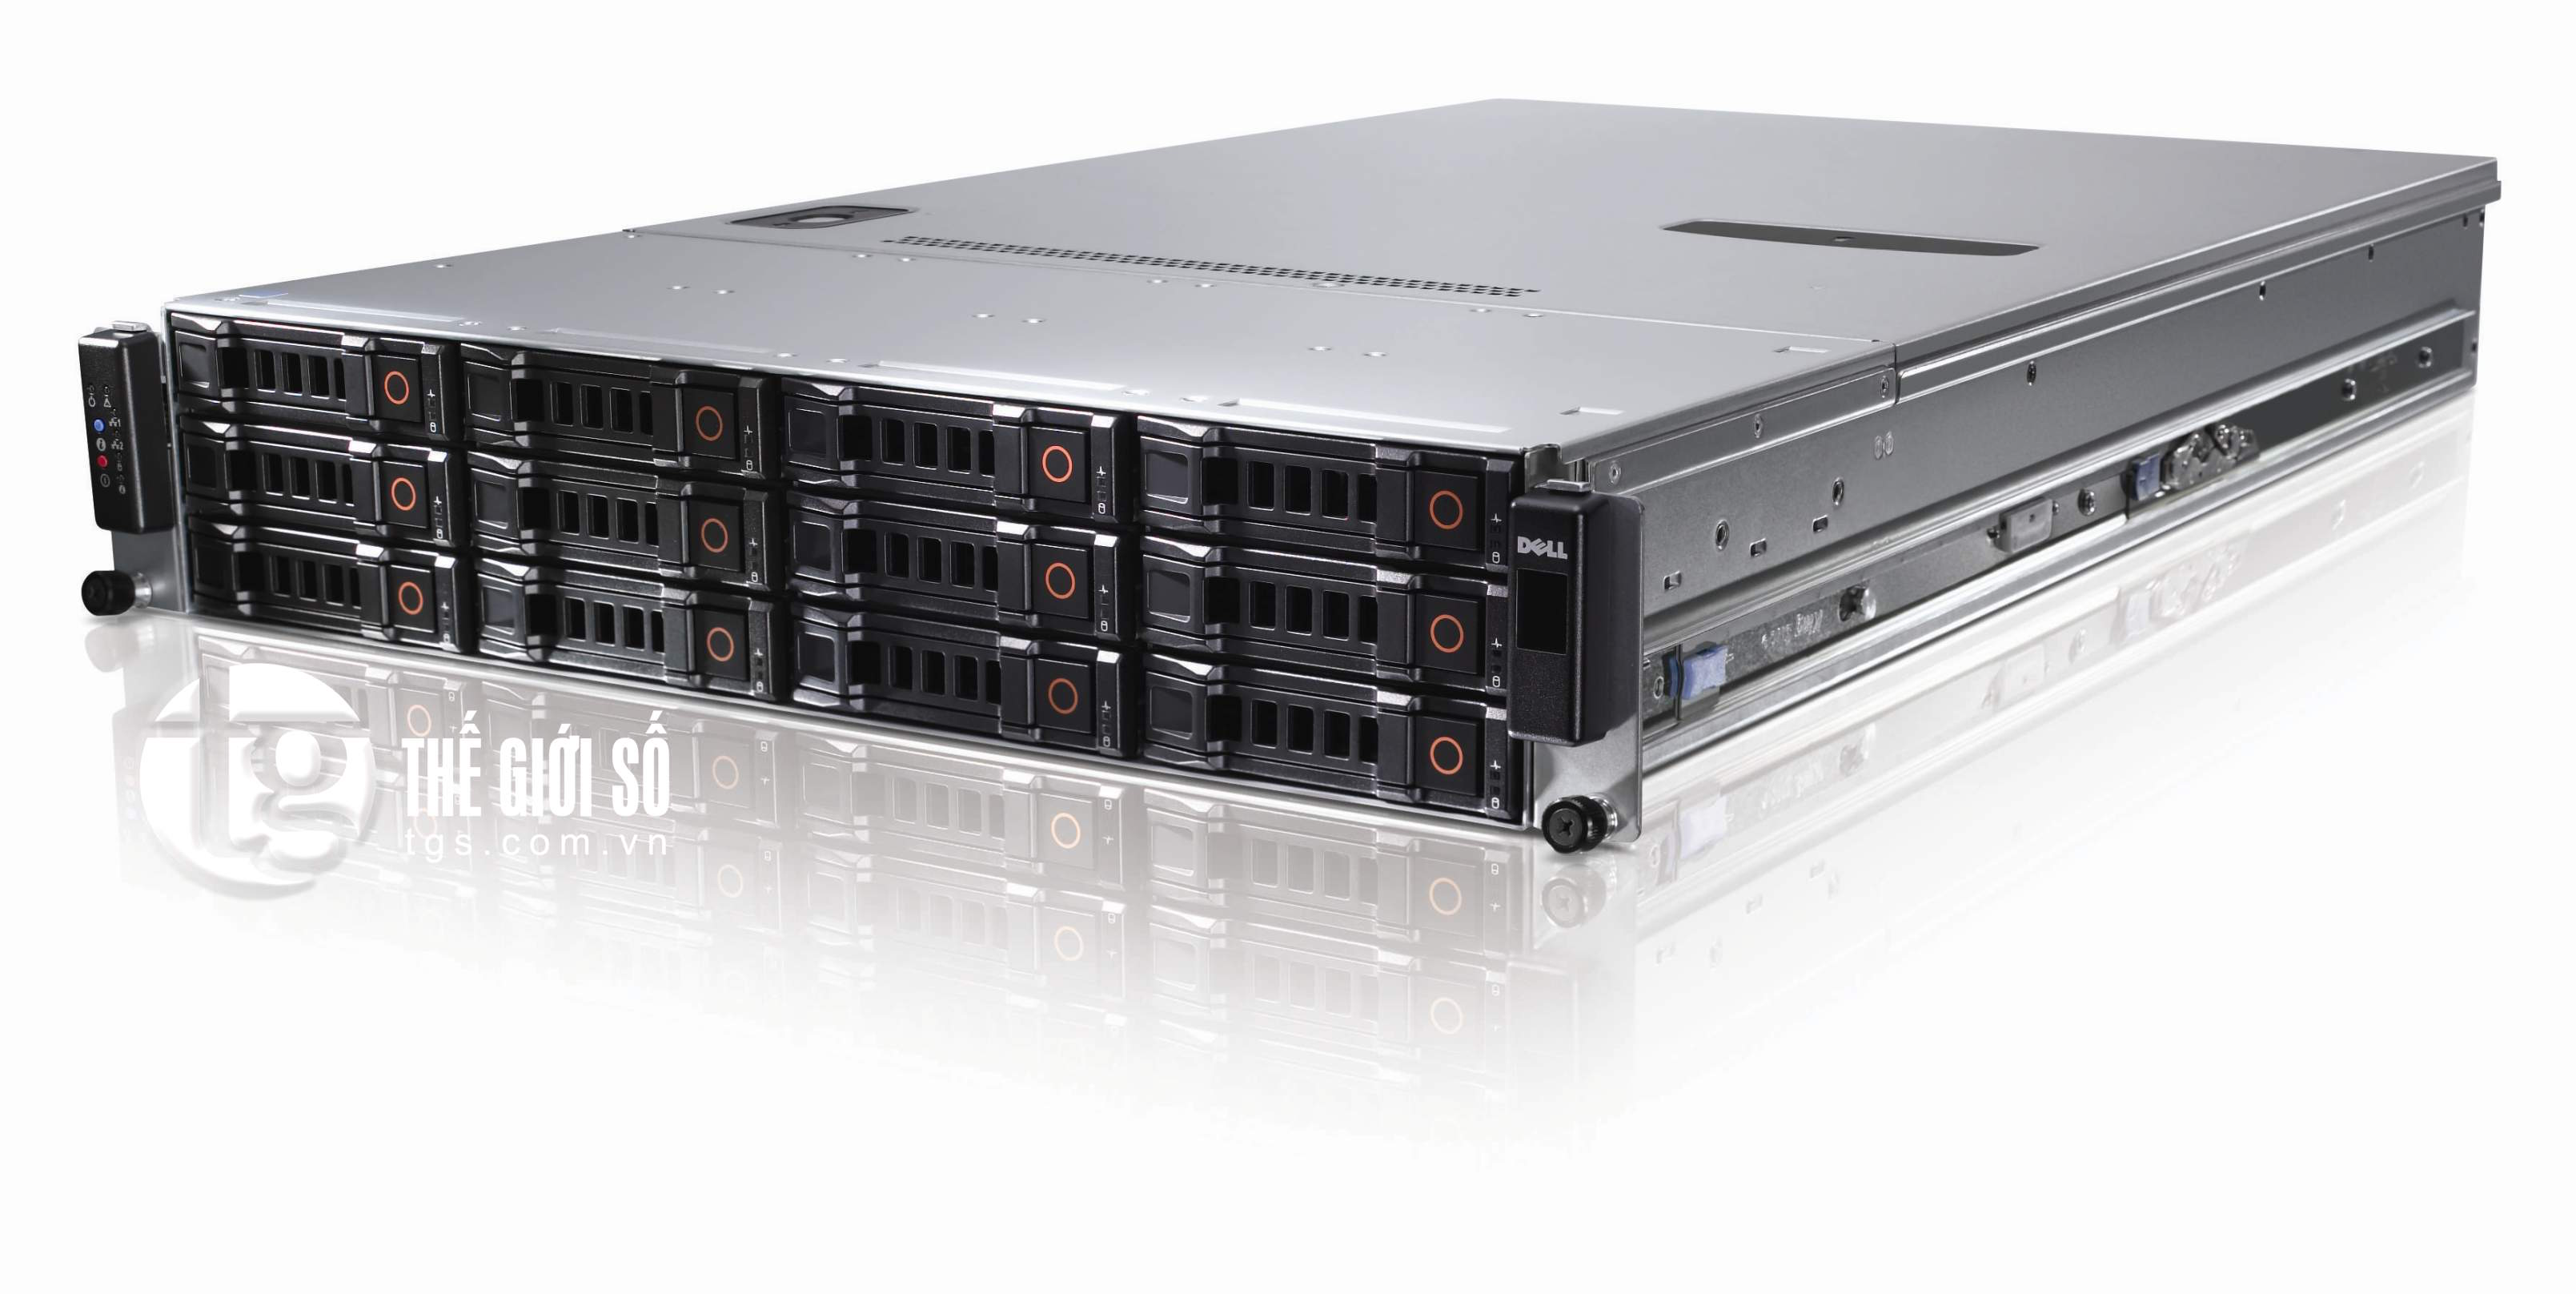 SERVER DELL POWEREDGE C2100 XEON 6-CORES X5660 CŨ